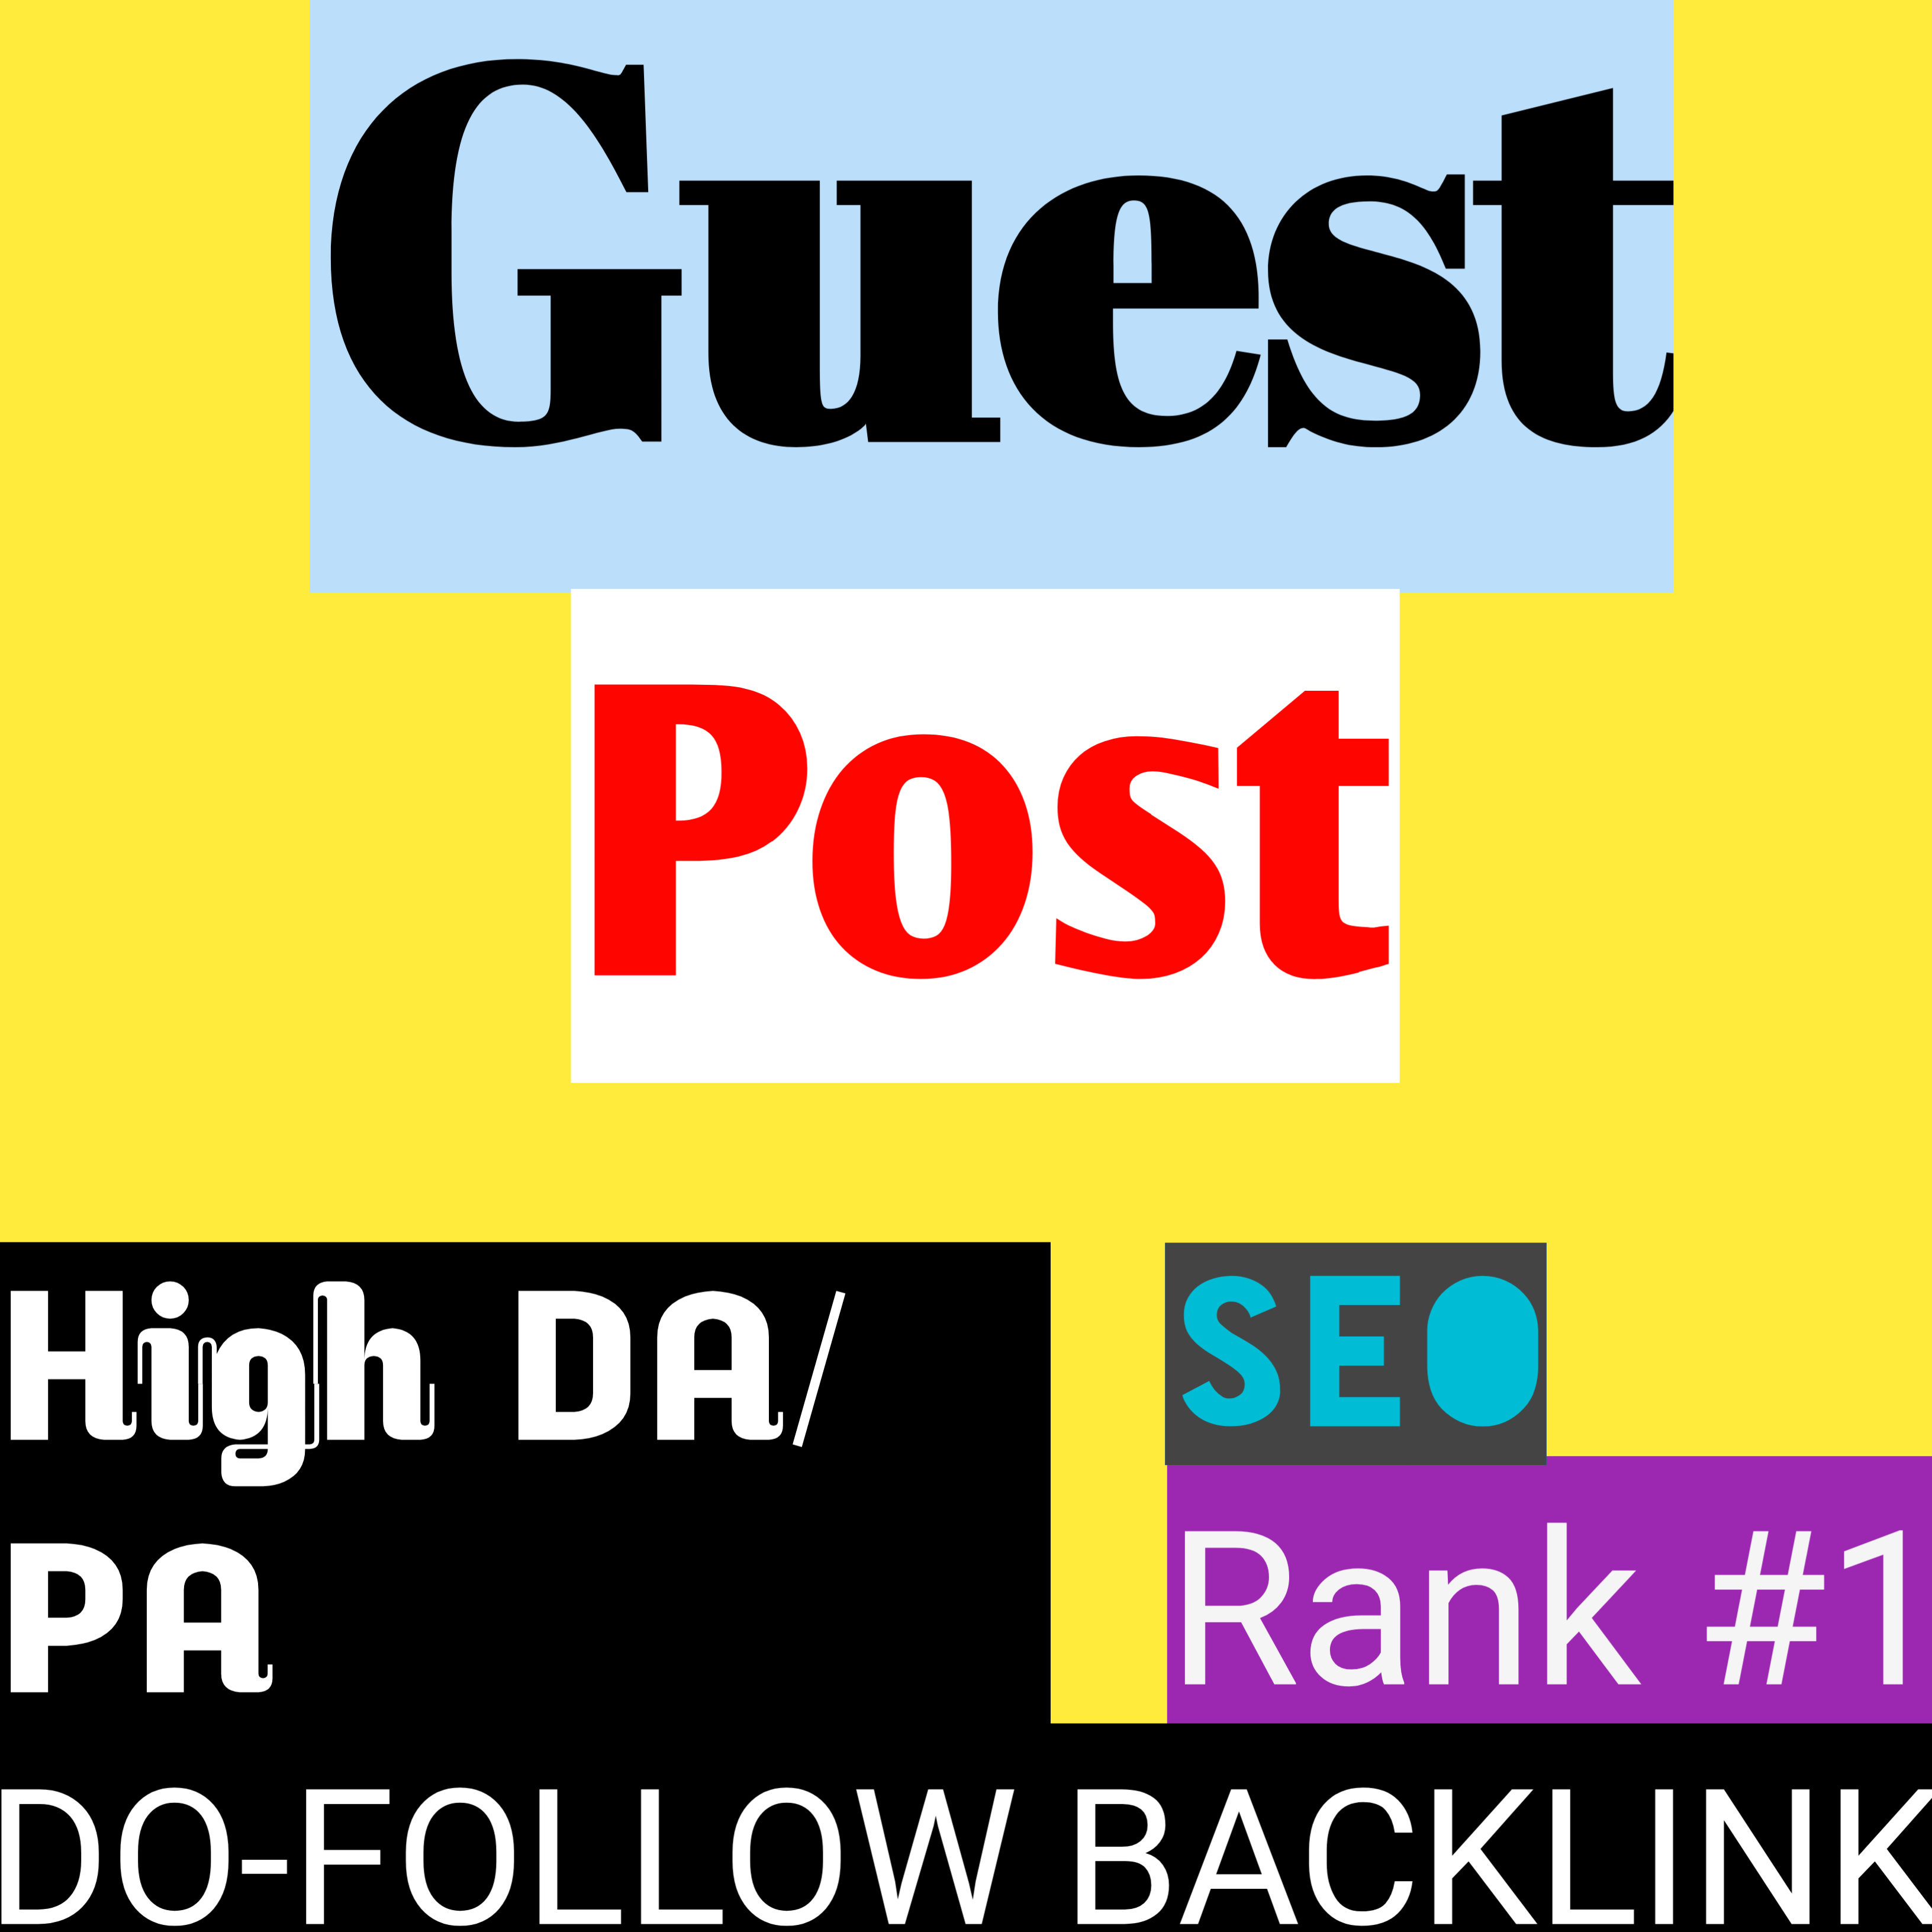 I will create 4 high authority Guest Post SEO backlinks from real quality websites